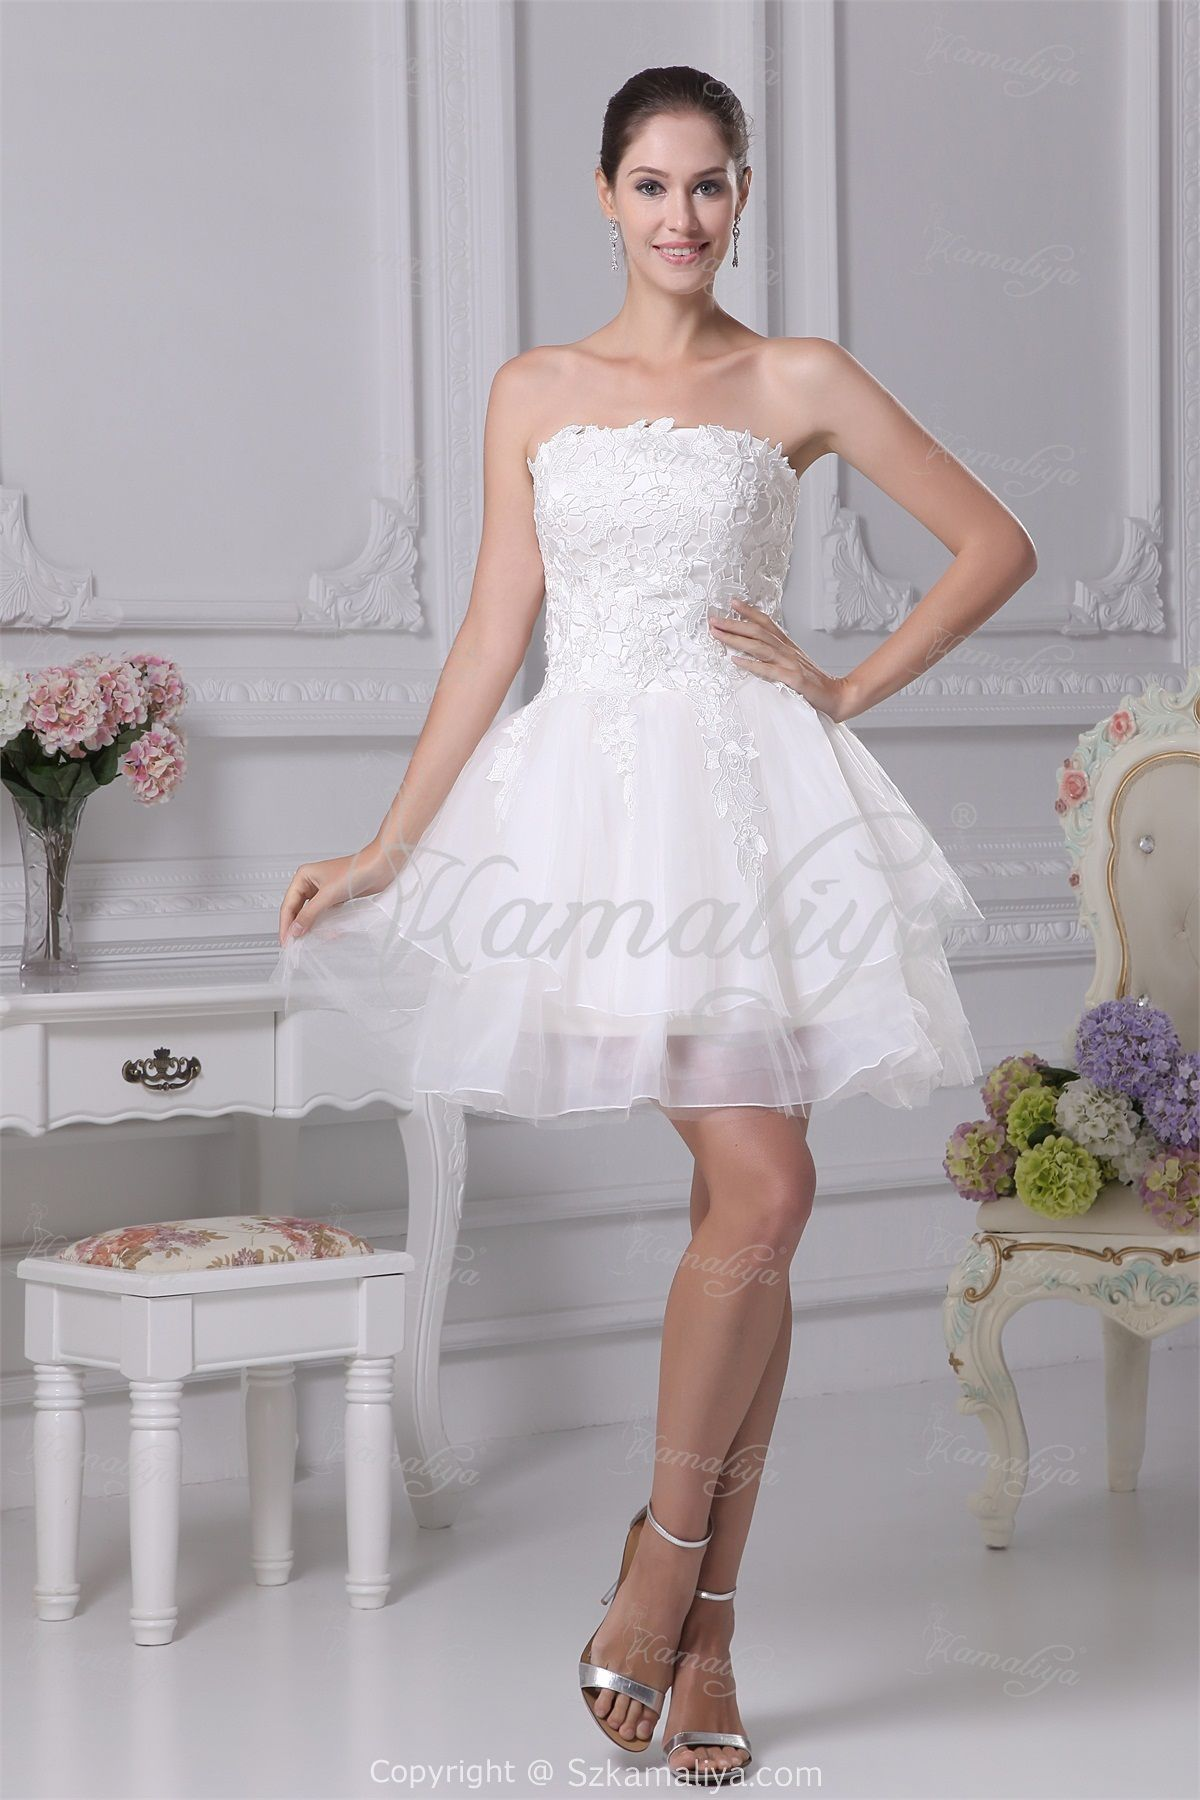 Sexy Short White Dresses For Wedding Reception Fashion Design Images